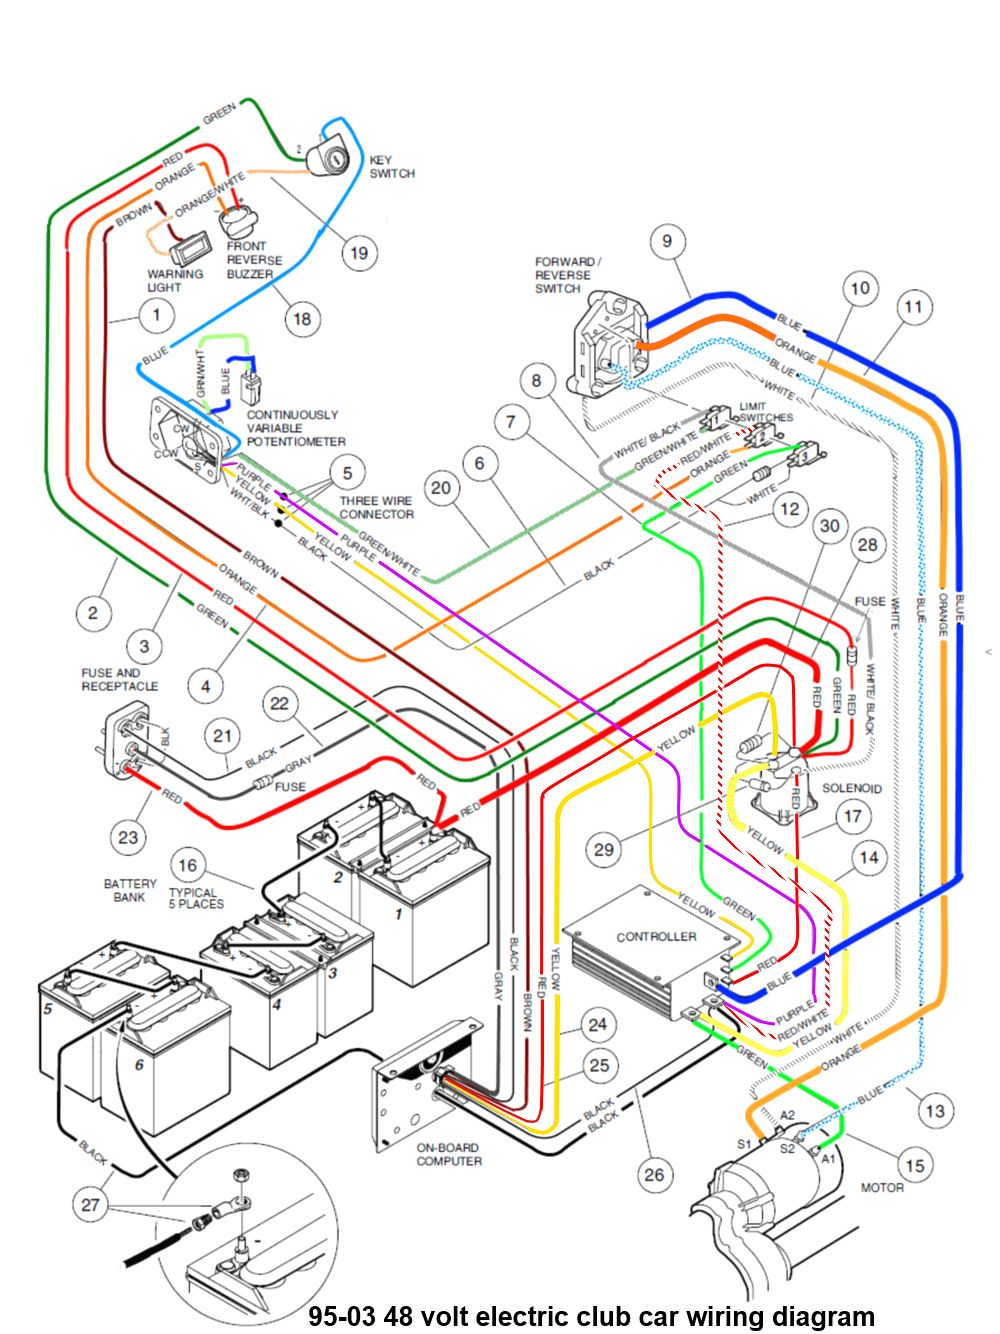 Pin by Diagram BacaMajalah on Wiring Samples | Electric golf ... Vw Golf Mk Towbar Wiring Diagram on